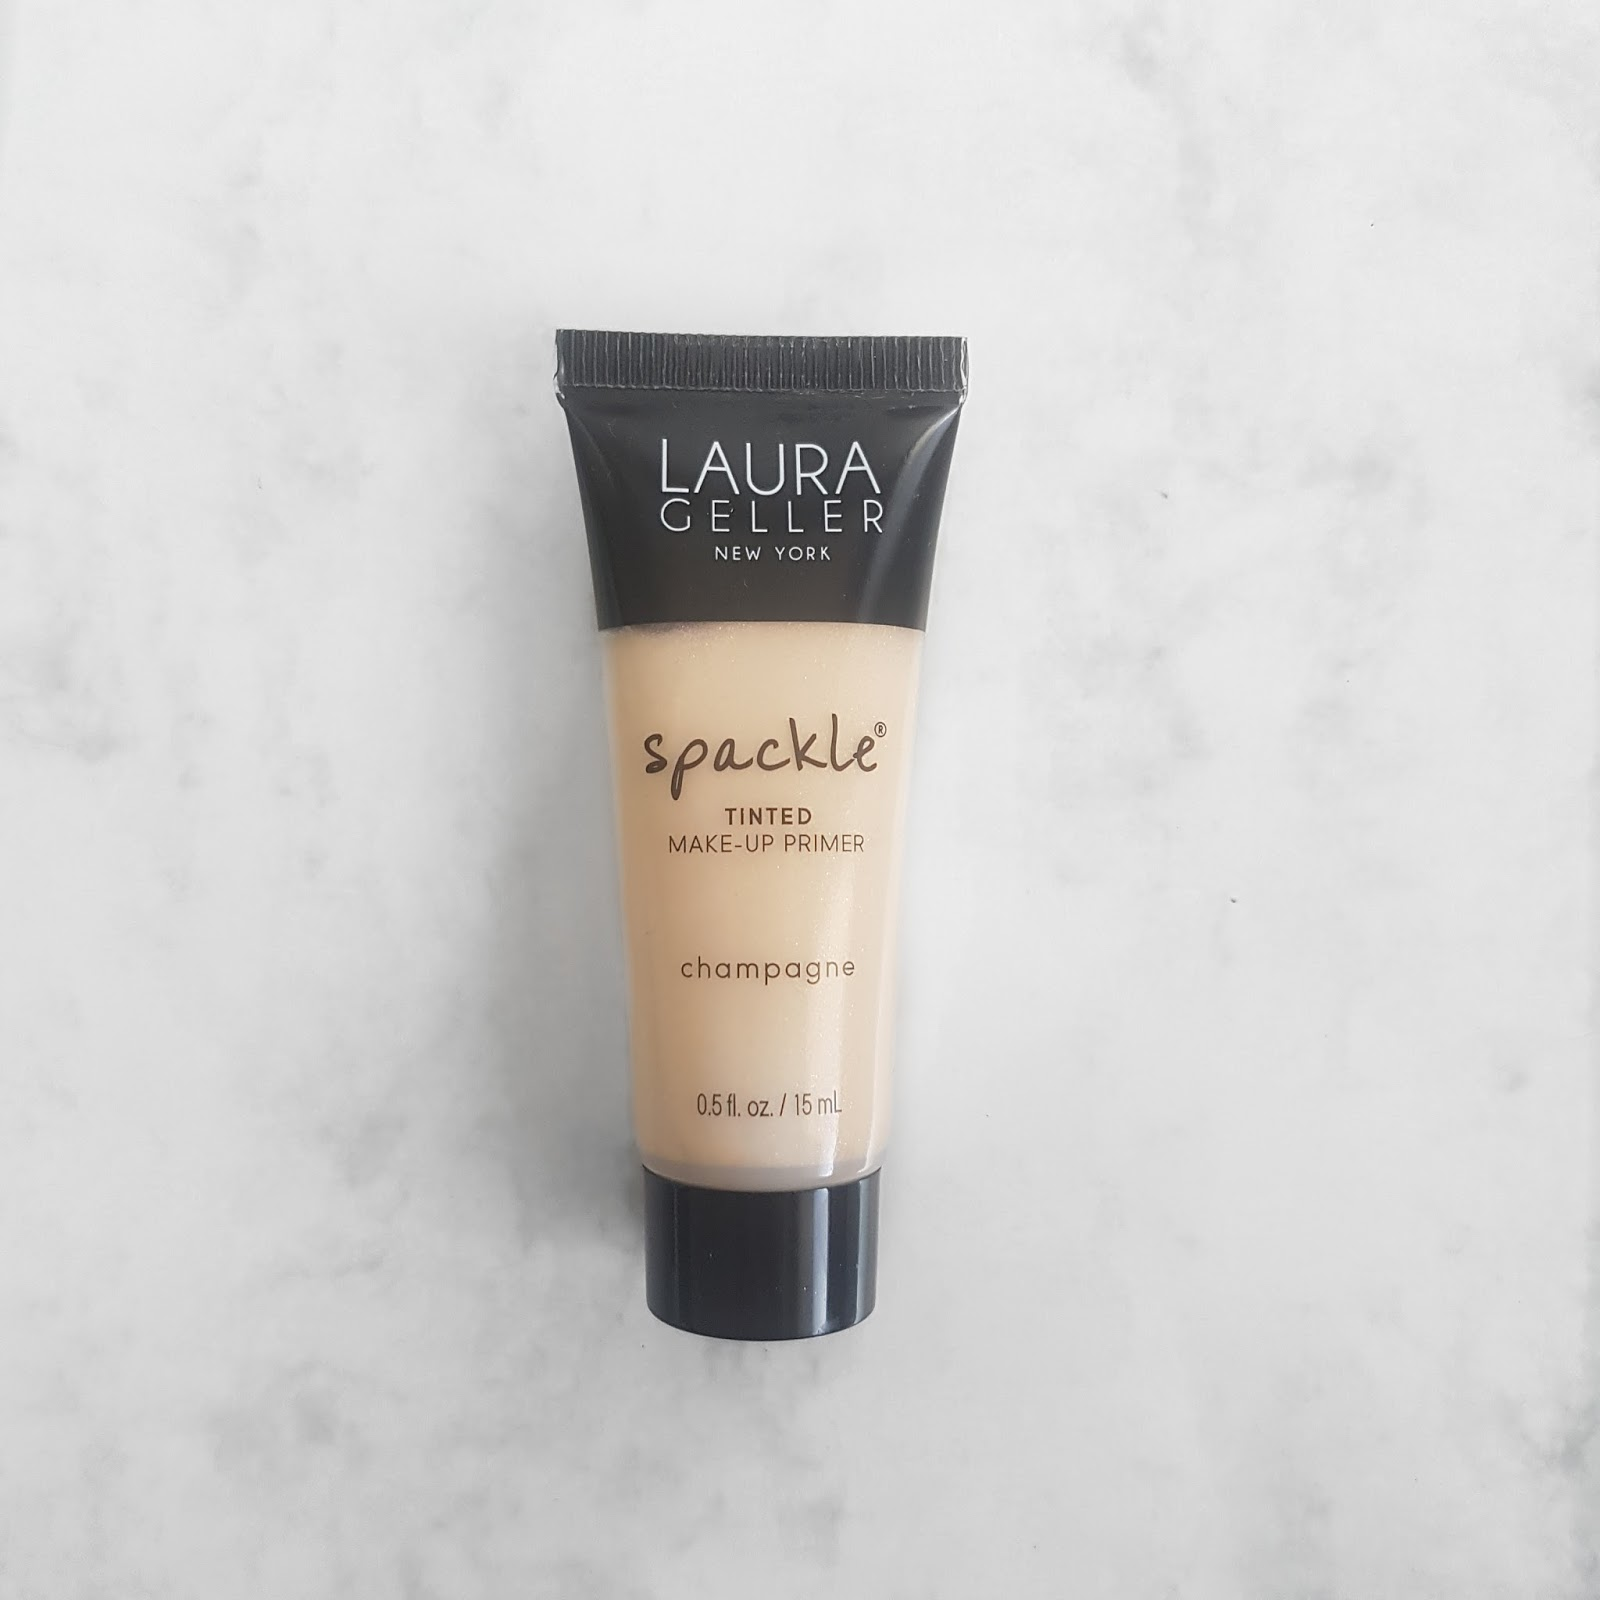 Laura Geller Spackle Tinted Make-Up Primer - Champagne